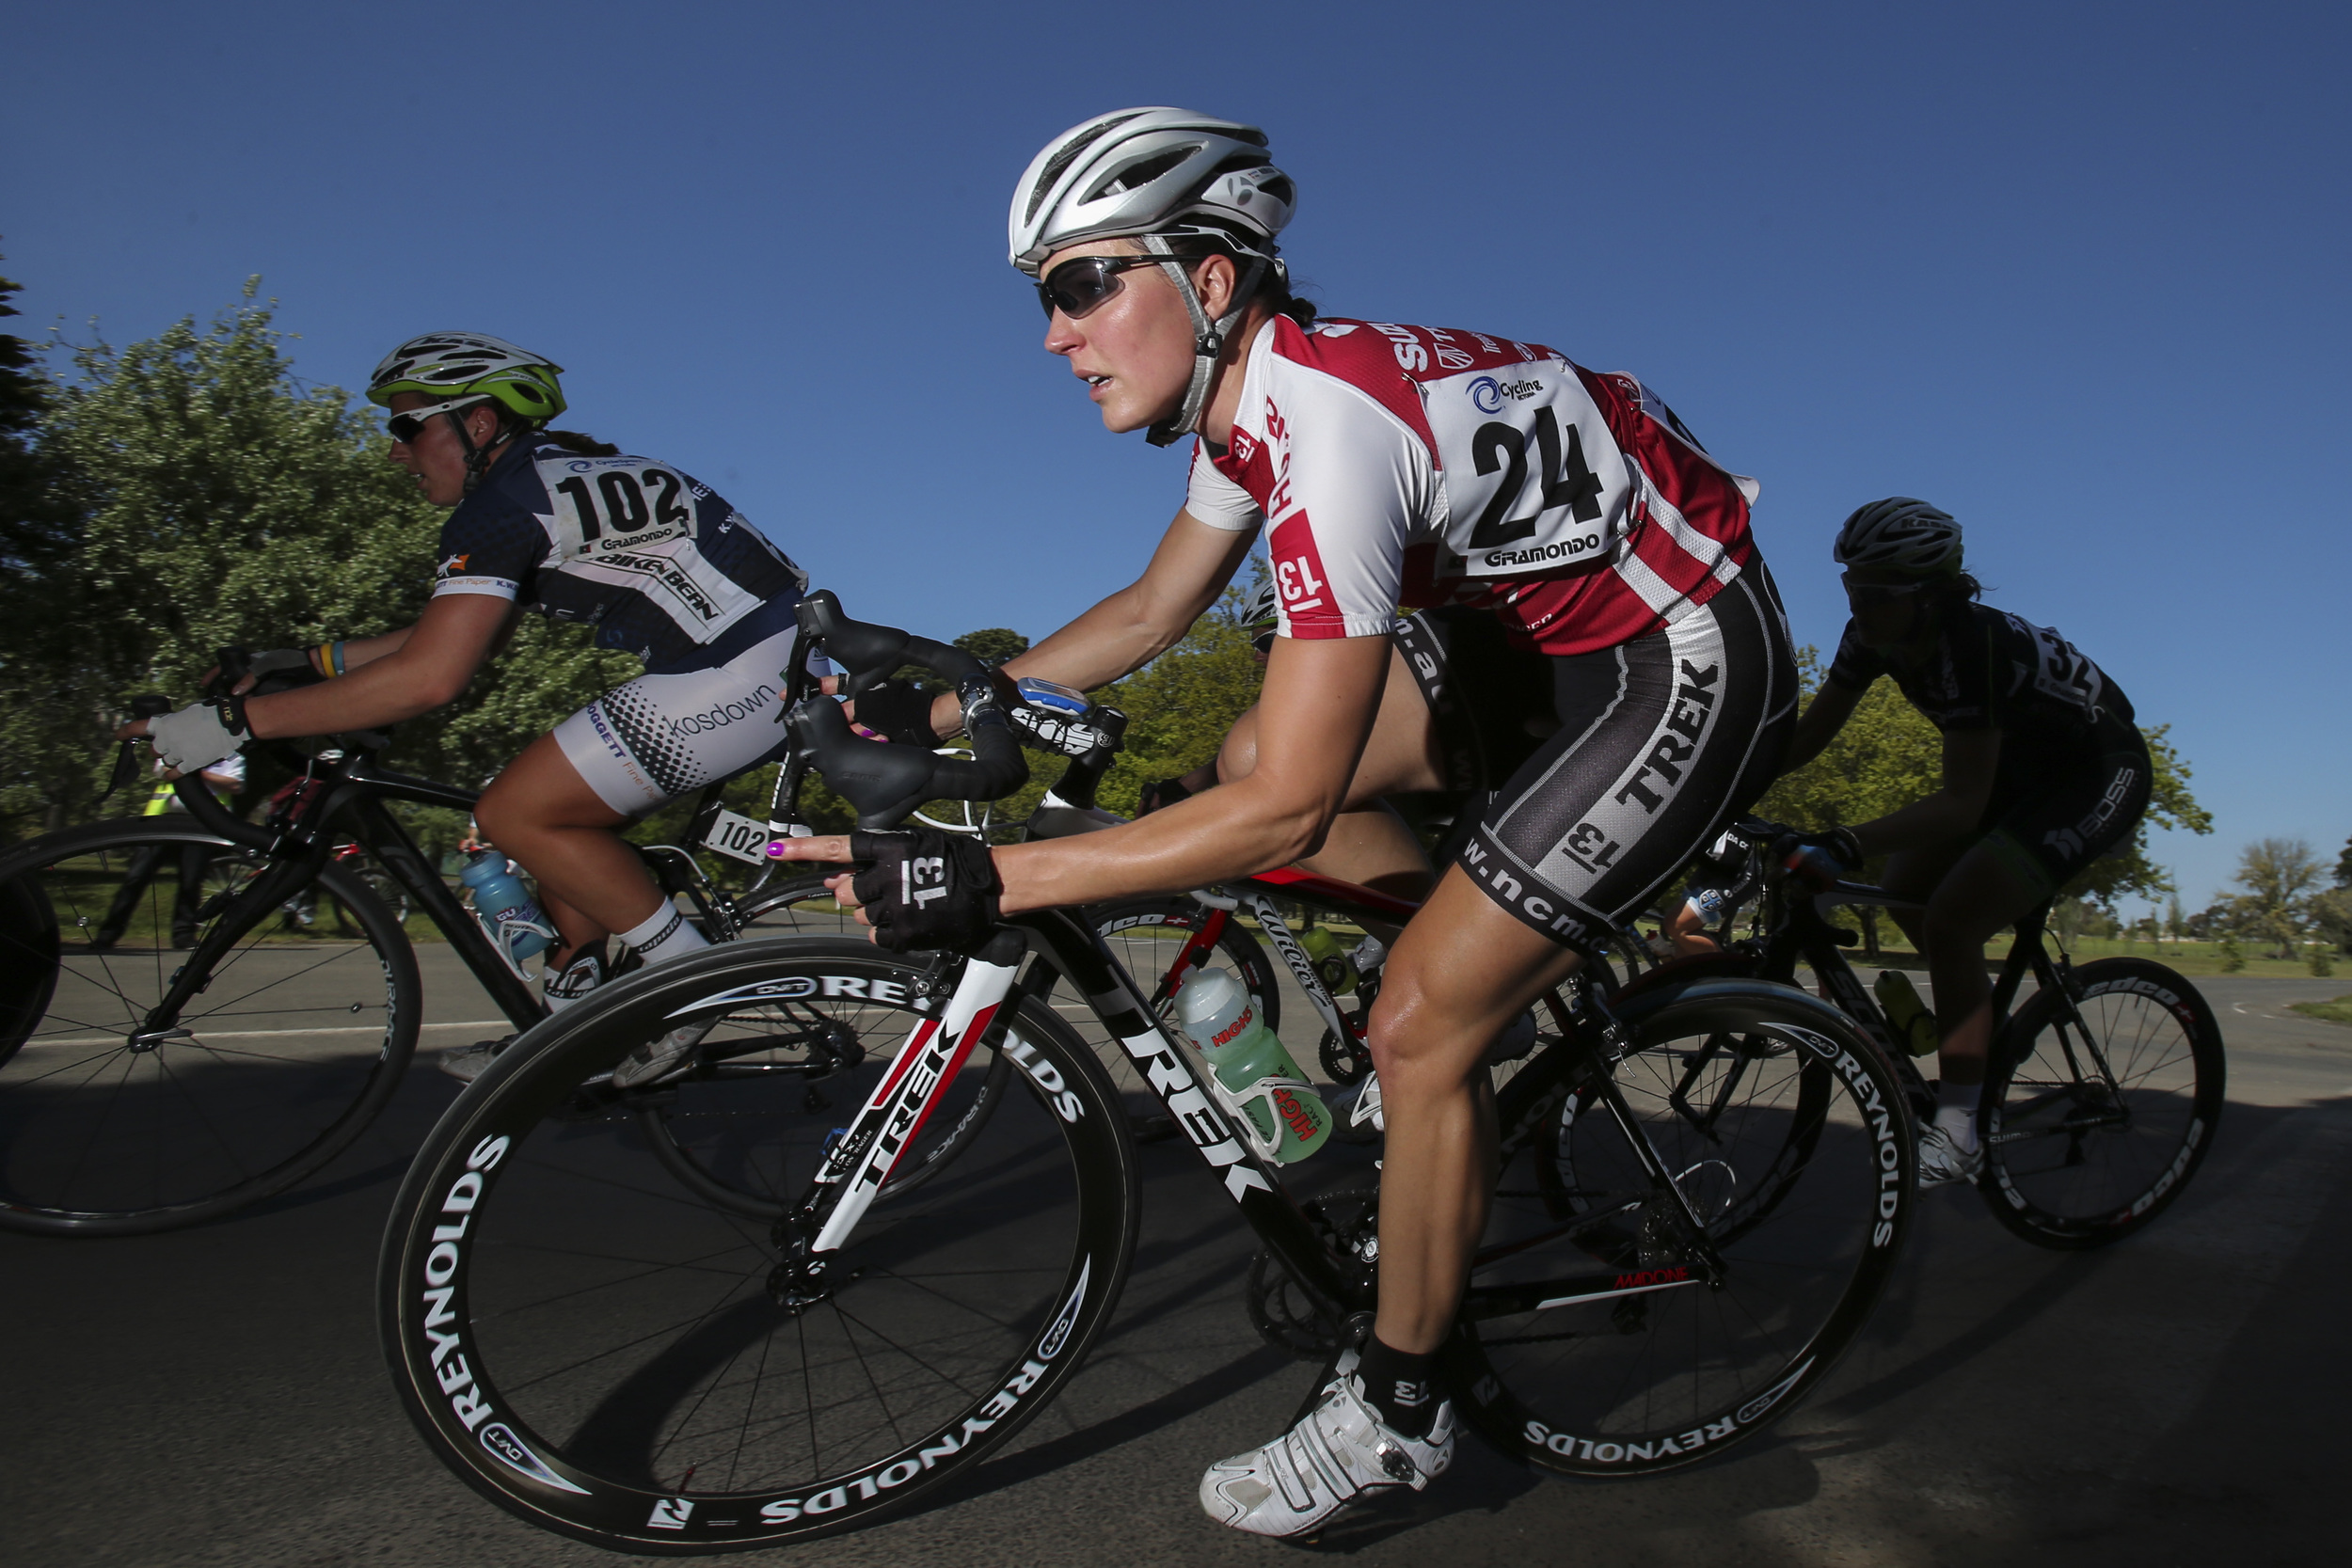 2012 Tour of the Goldfields